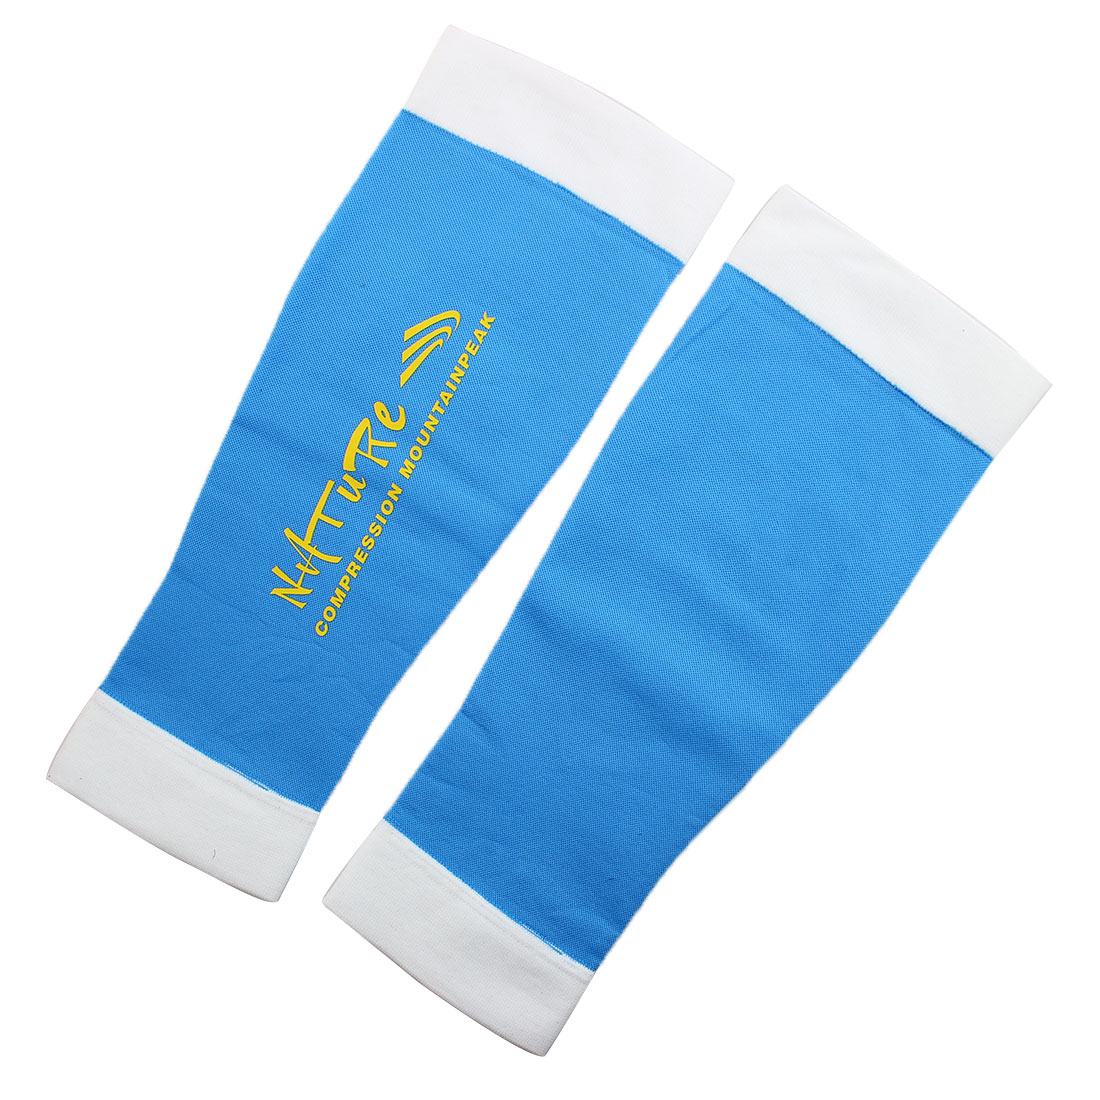 Mountainpeak Authorized Gym Sports Compression Leg Sleeve Protector M Pair #6 - image 2 of 4